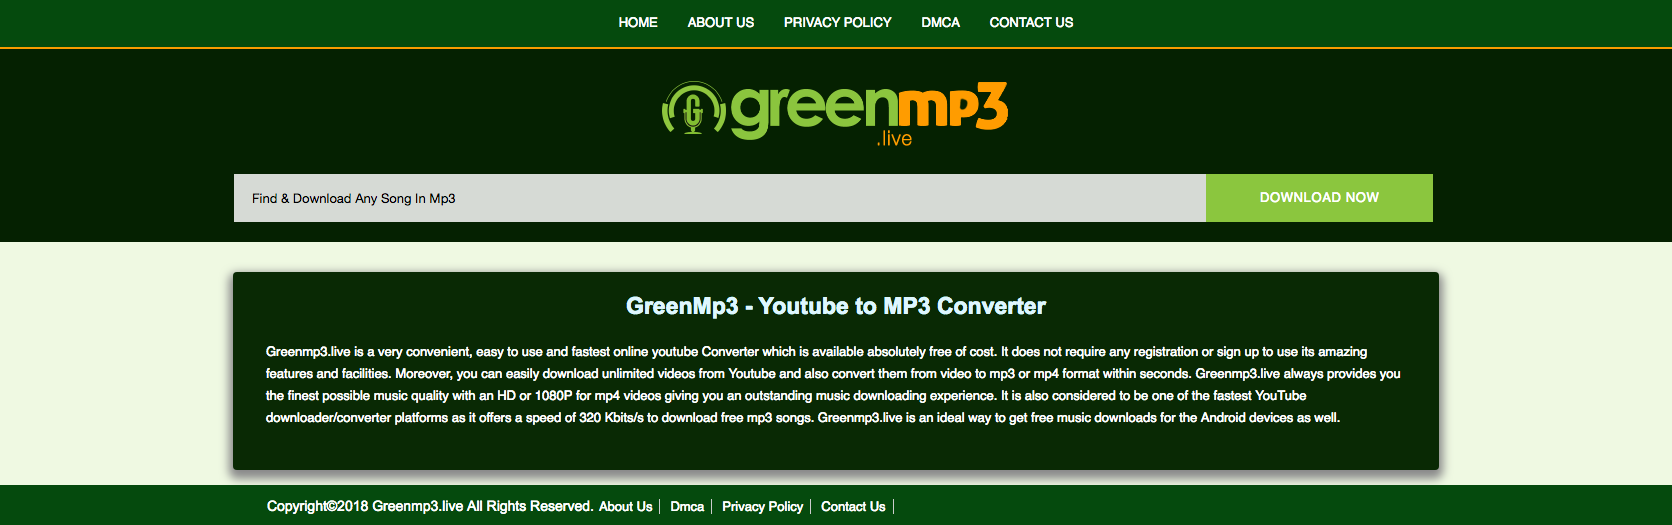 Converting Youtube Videos To Mp3 By Green Mp3 By Green Mp3 Medium